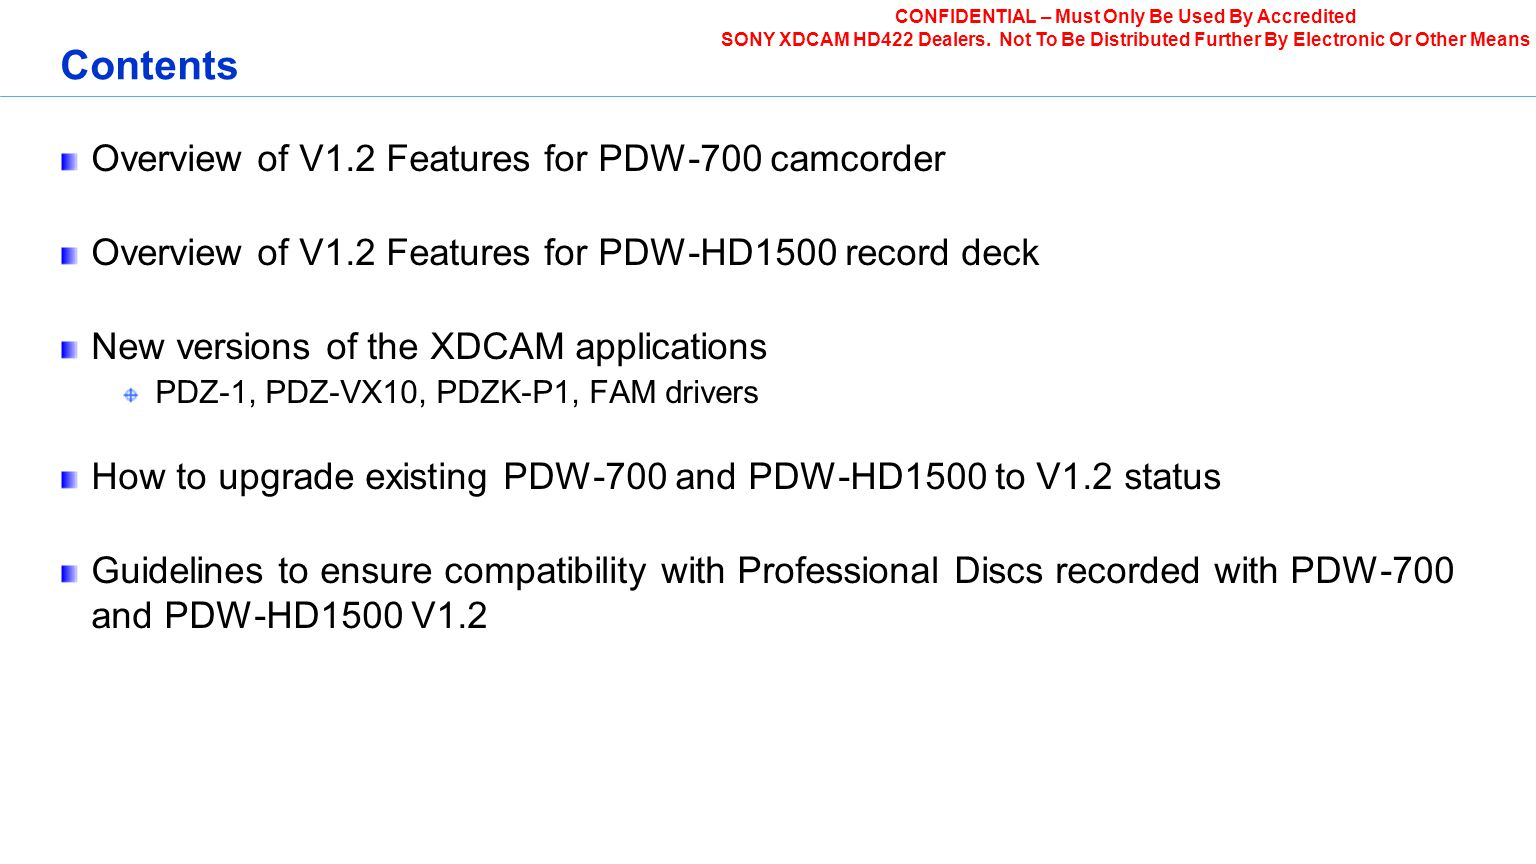 CONFIDENTIAL – Must Only Be Used By Accredited SONY XDCAM HD422 Dealers.